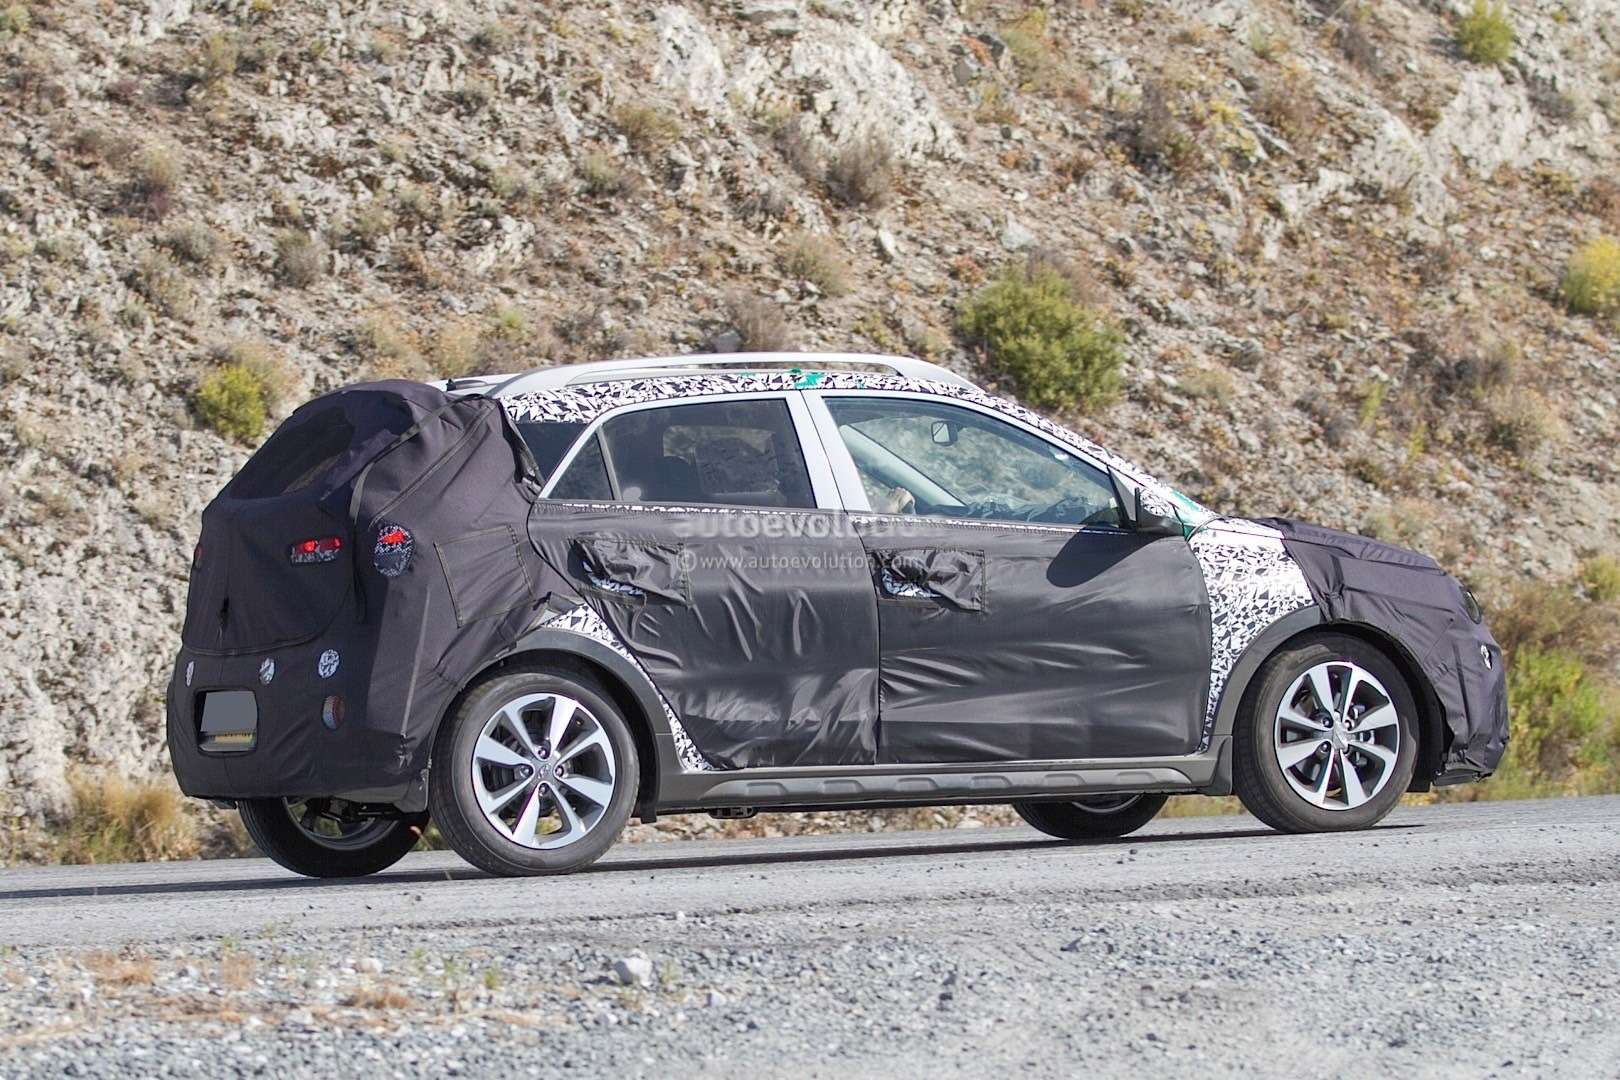 hyundai-i20-cross-test-mule-spotted-in-southern-europe-it-might-become-a-global-model-photo-gallery_5